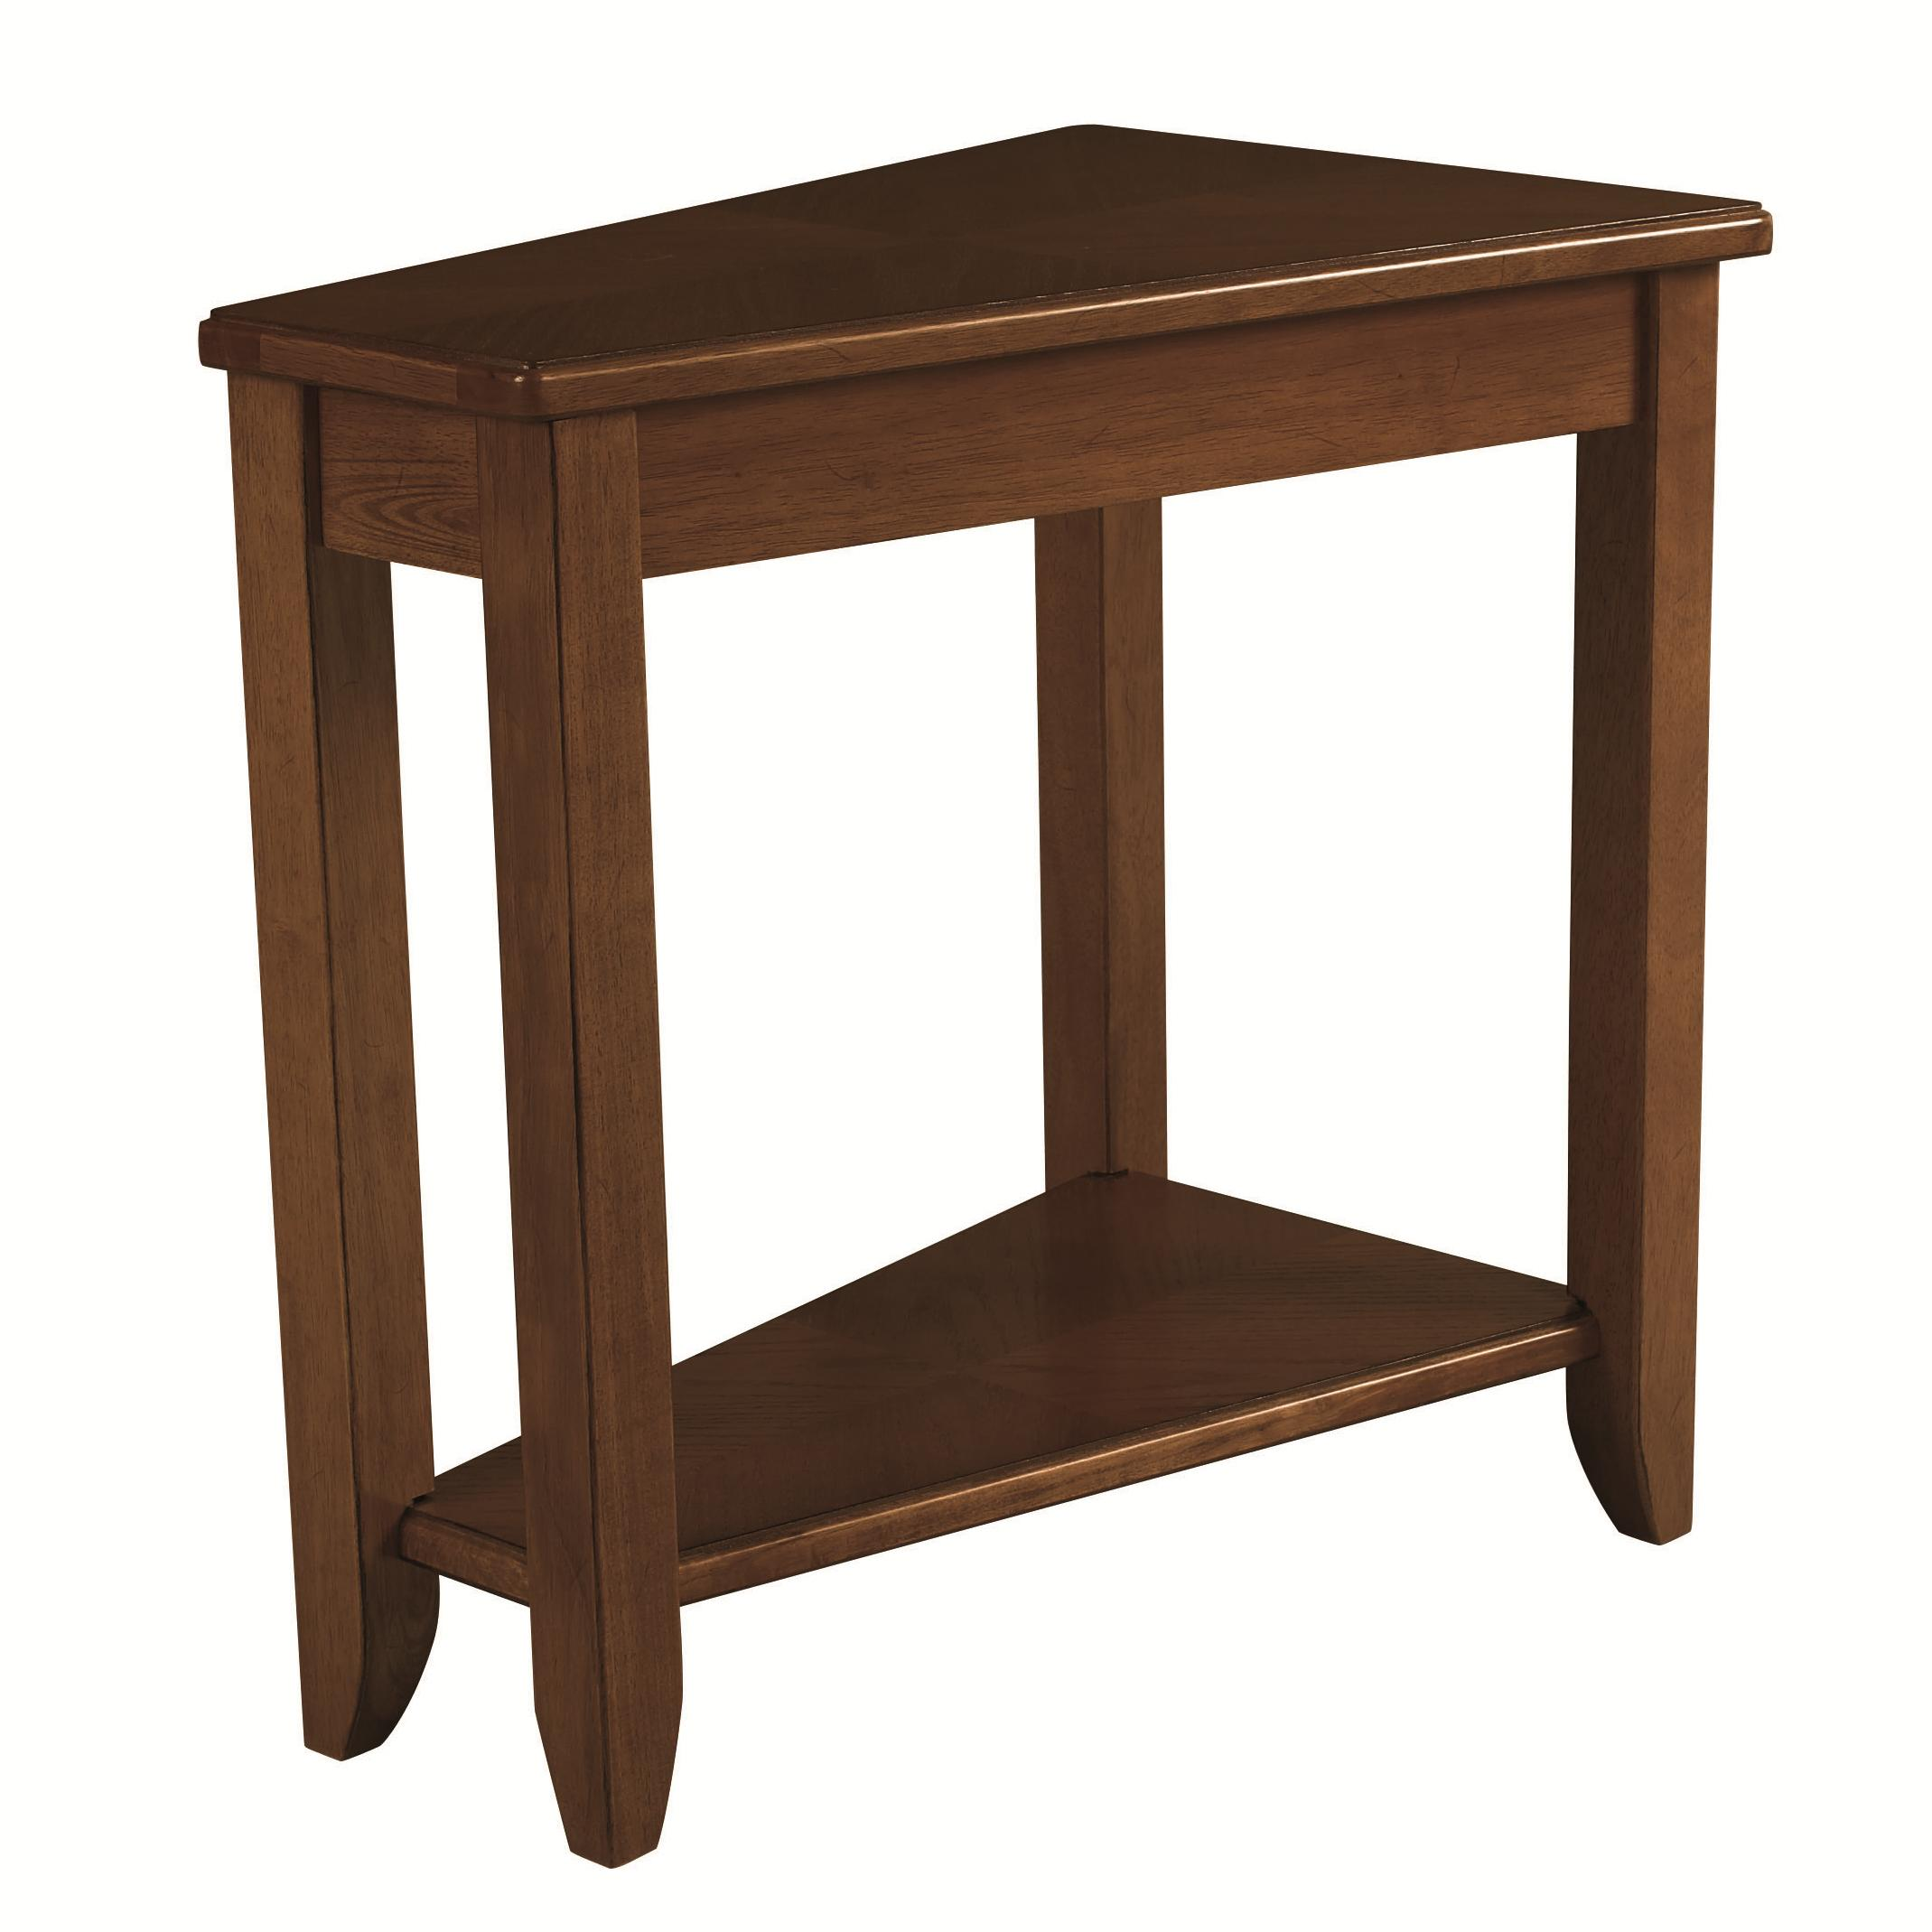 Chairsides Oak Chairside Table by Hammary at Stoney Creek Furniture